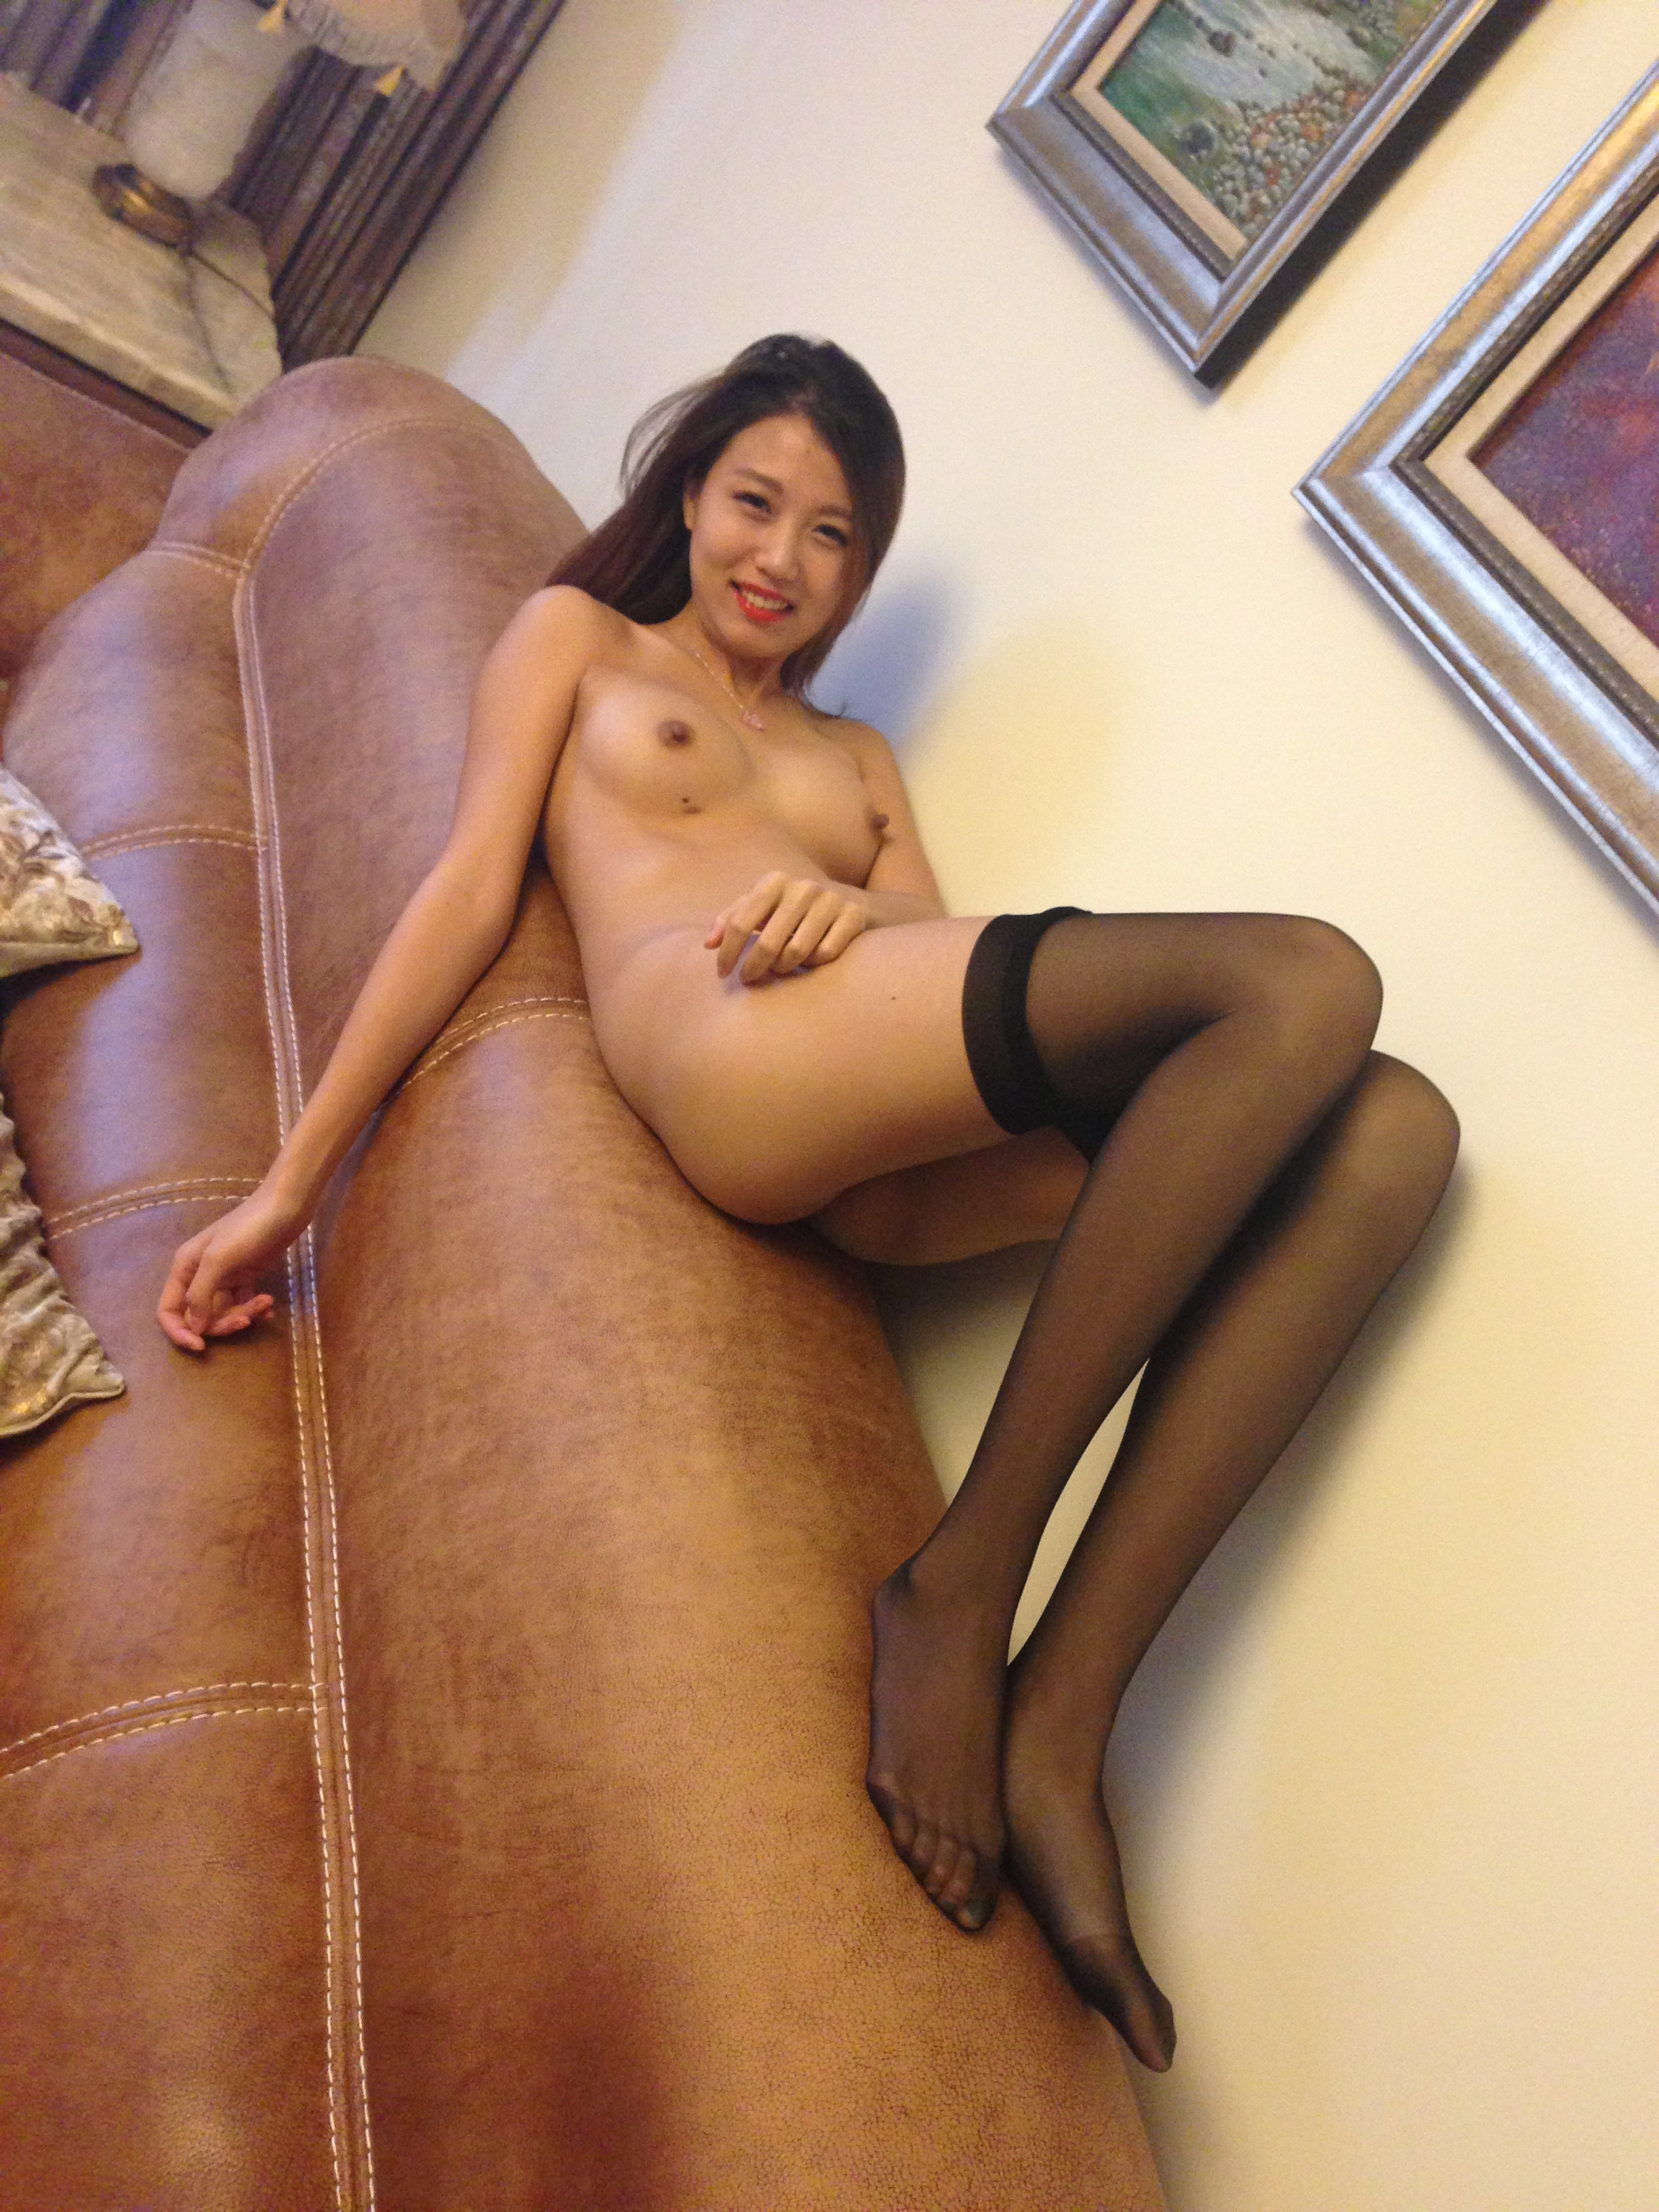 Chinese ex gf nude picture 324